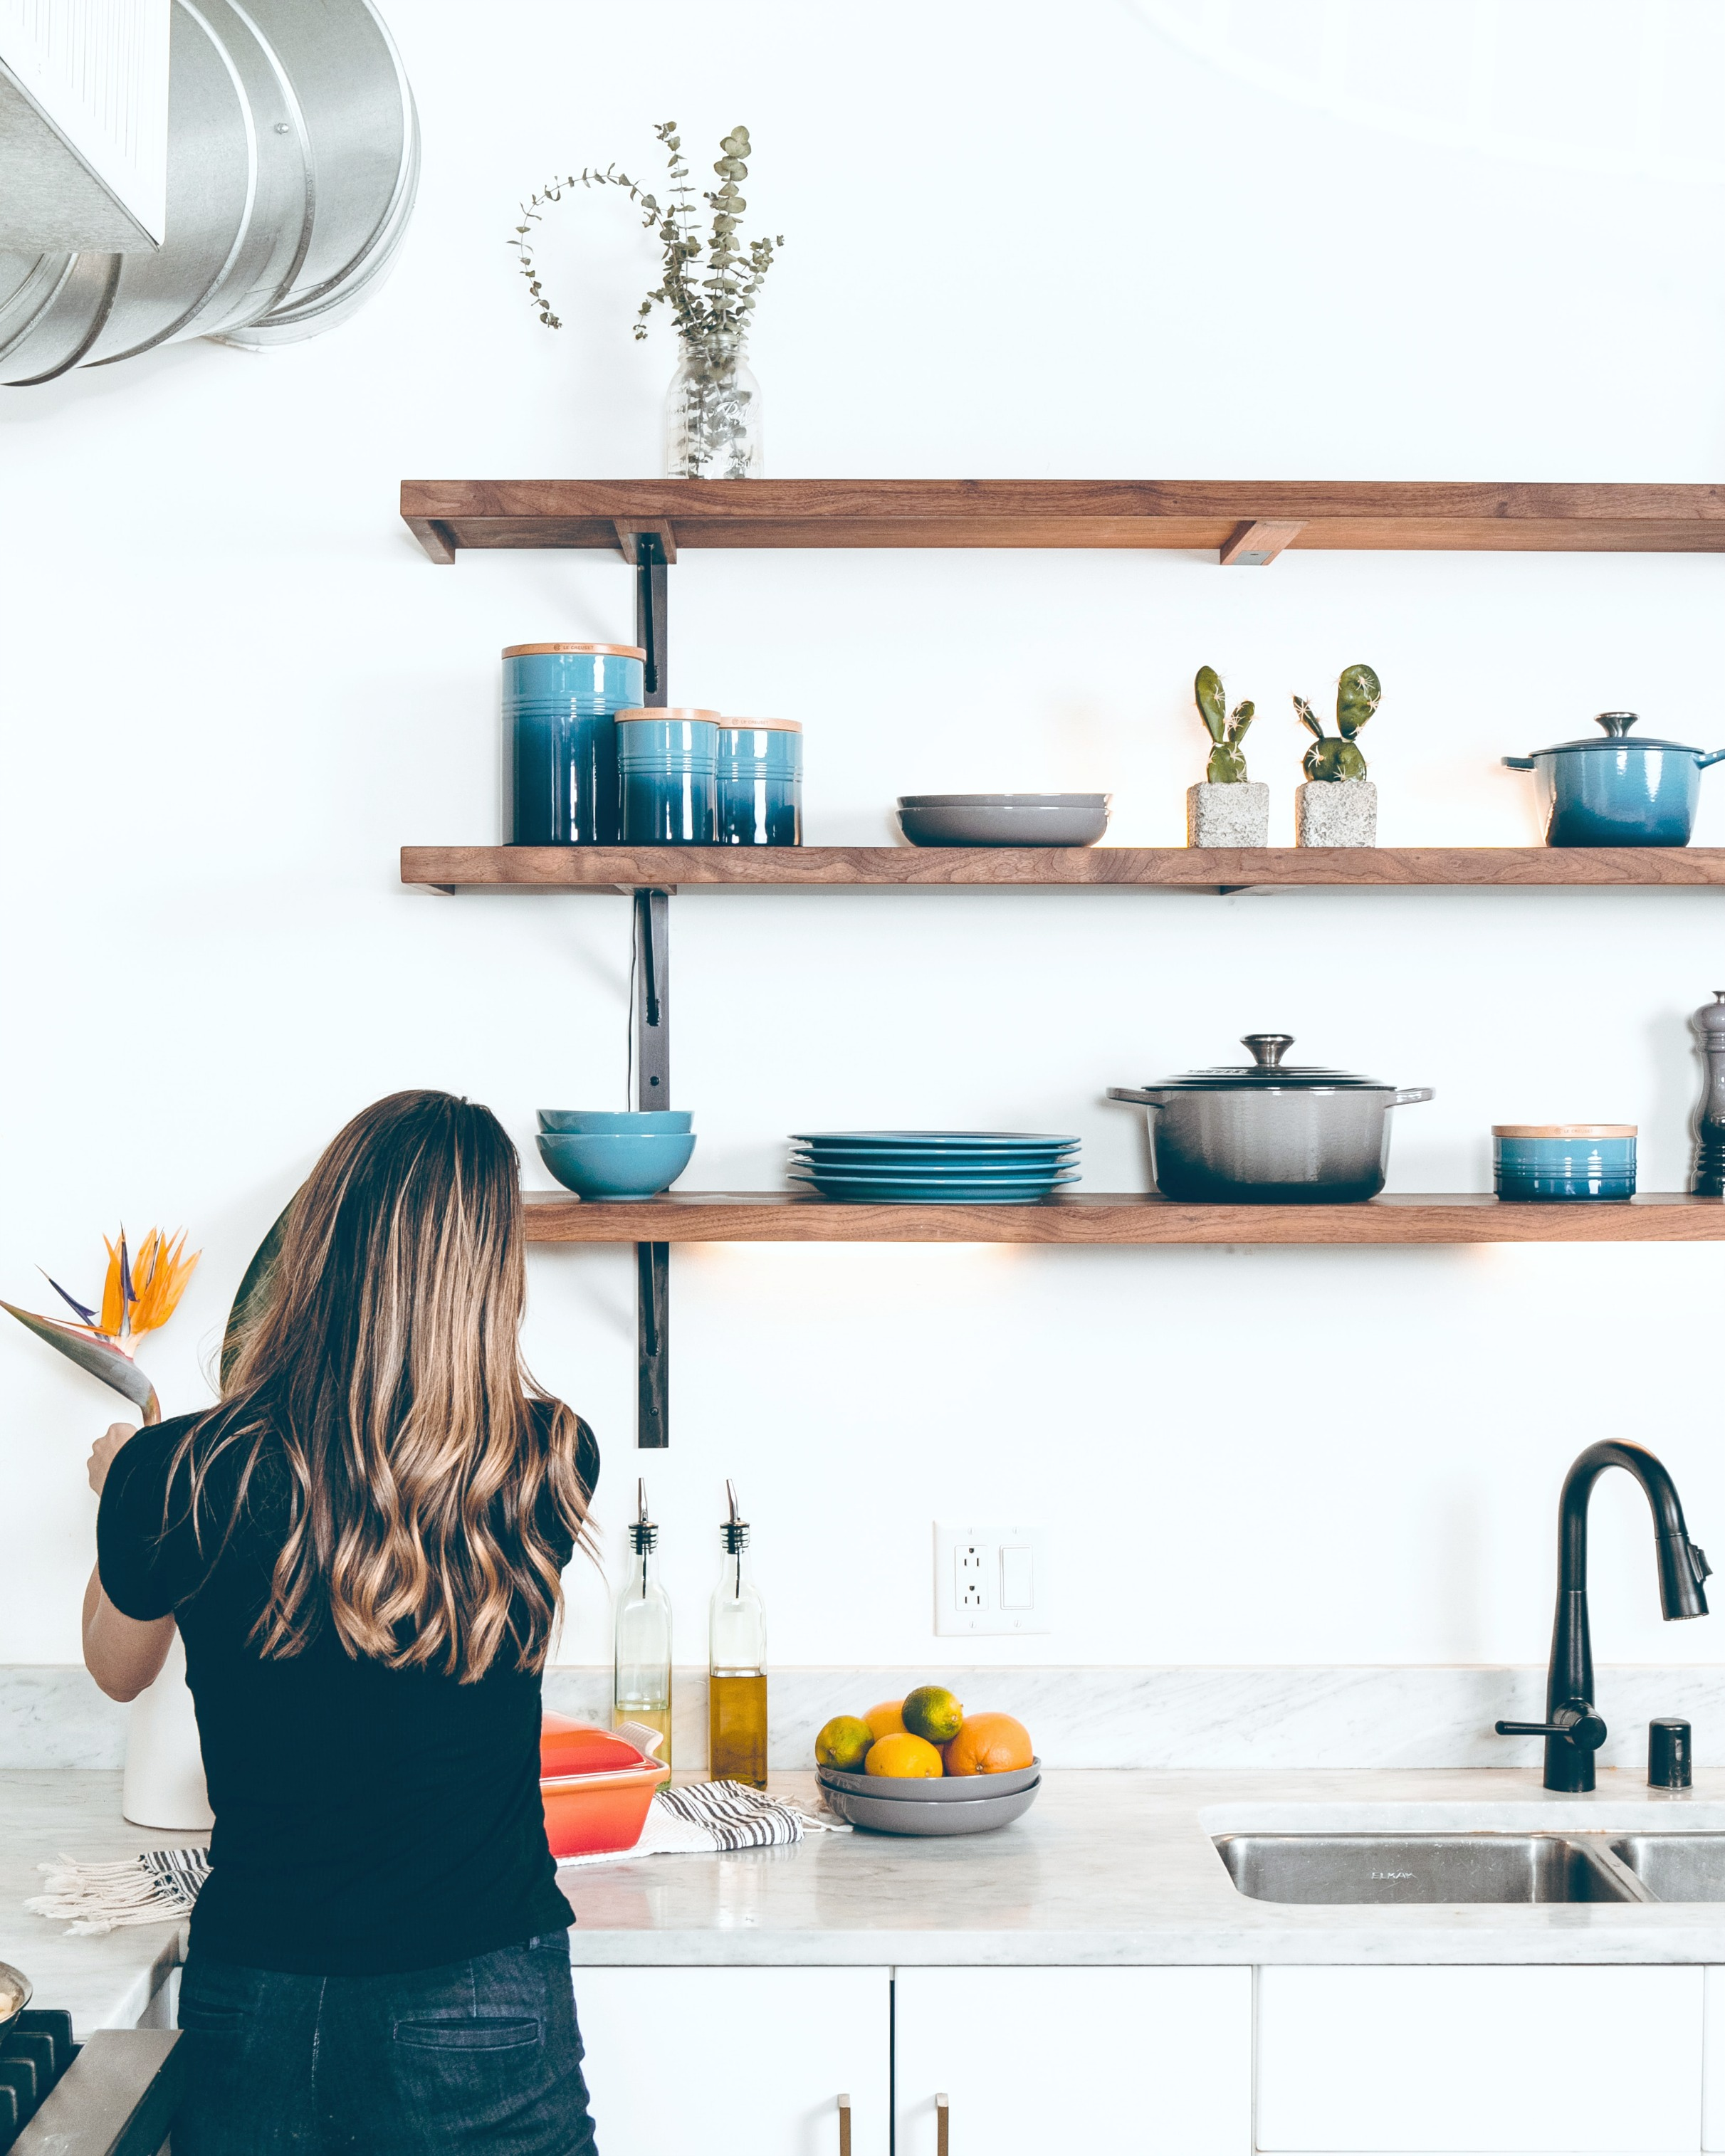 A woman adds flowers to her beautiful modern kitchen. The kitchen has exposed shelves.